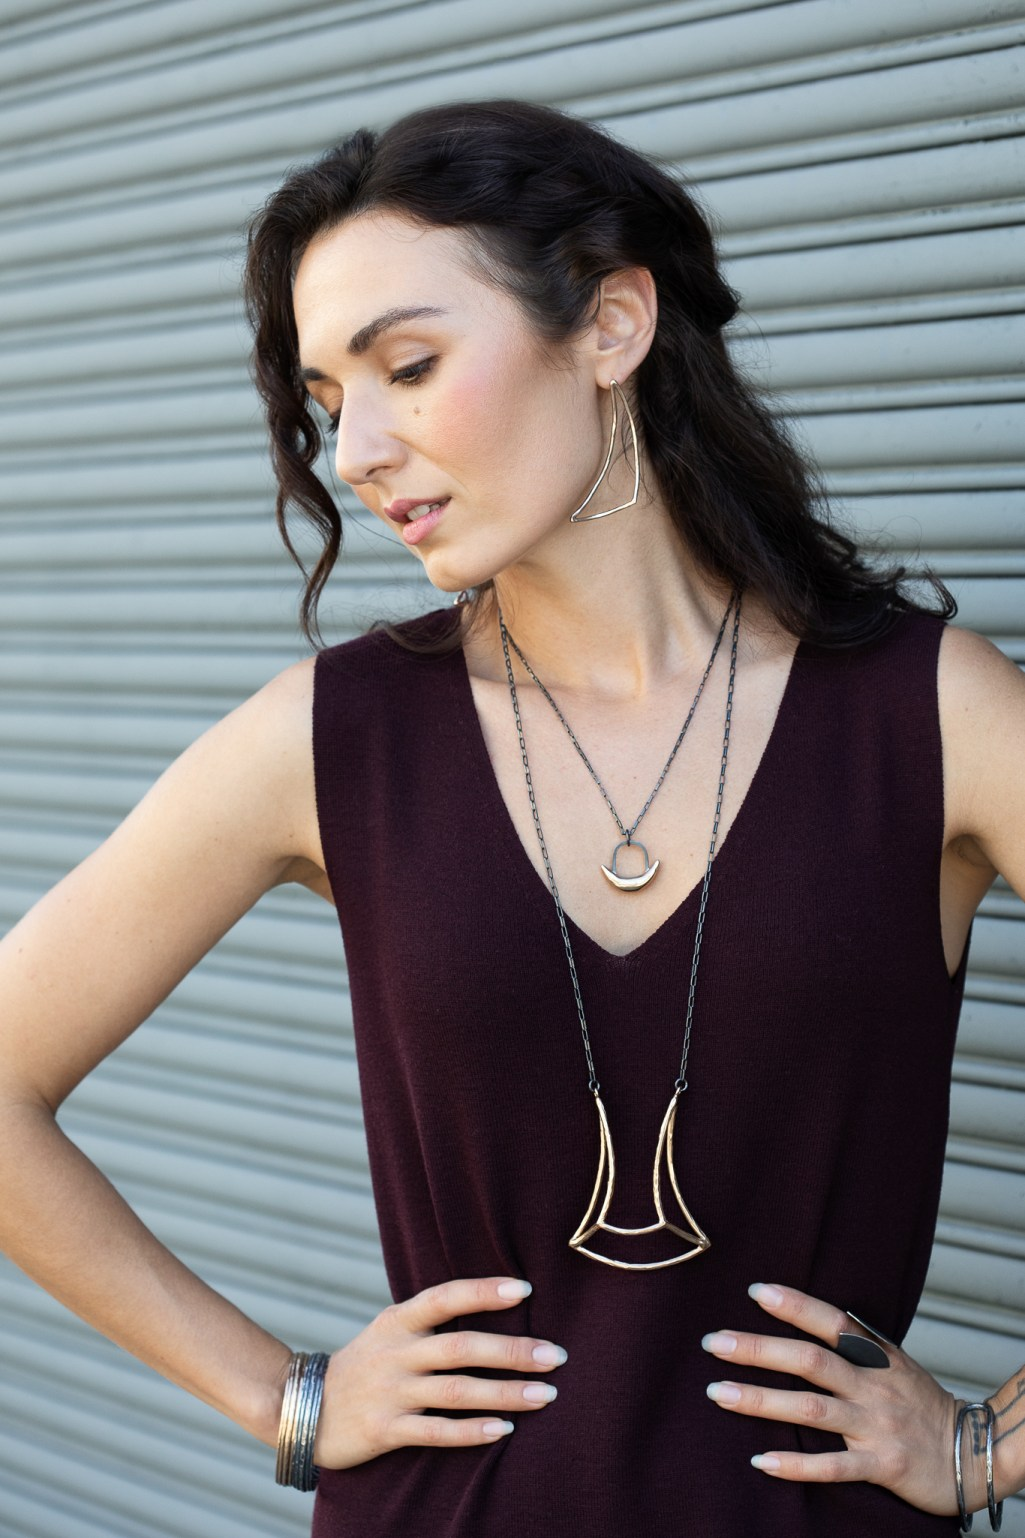 Model Zoe West with makeup by Kalyn Slaughter for Jewelry advertising photographer Ella Sophie